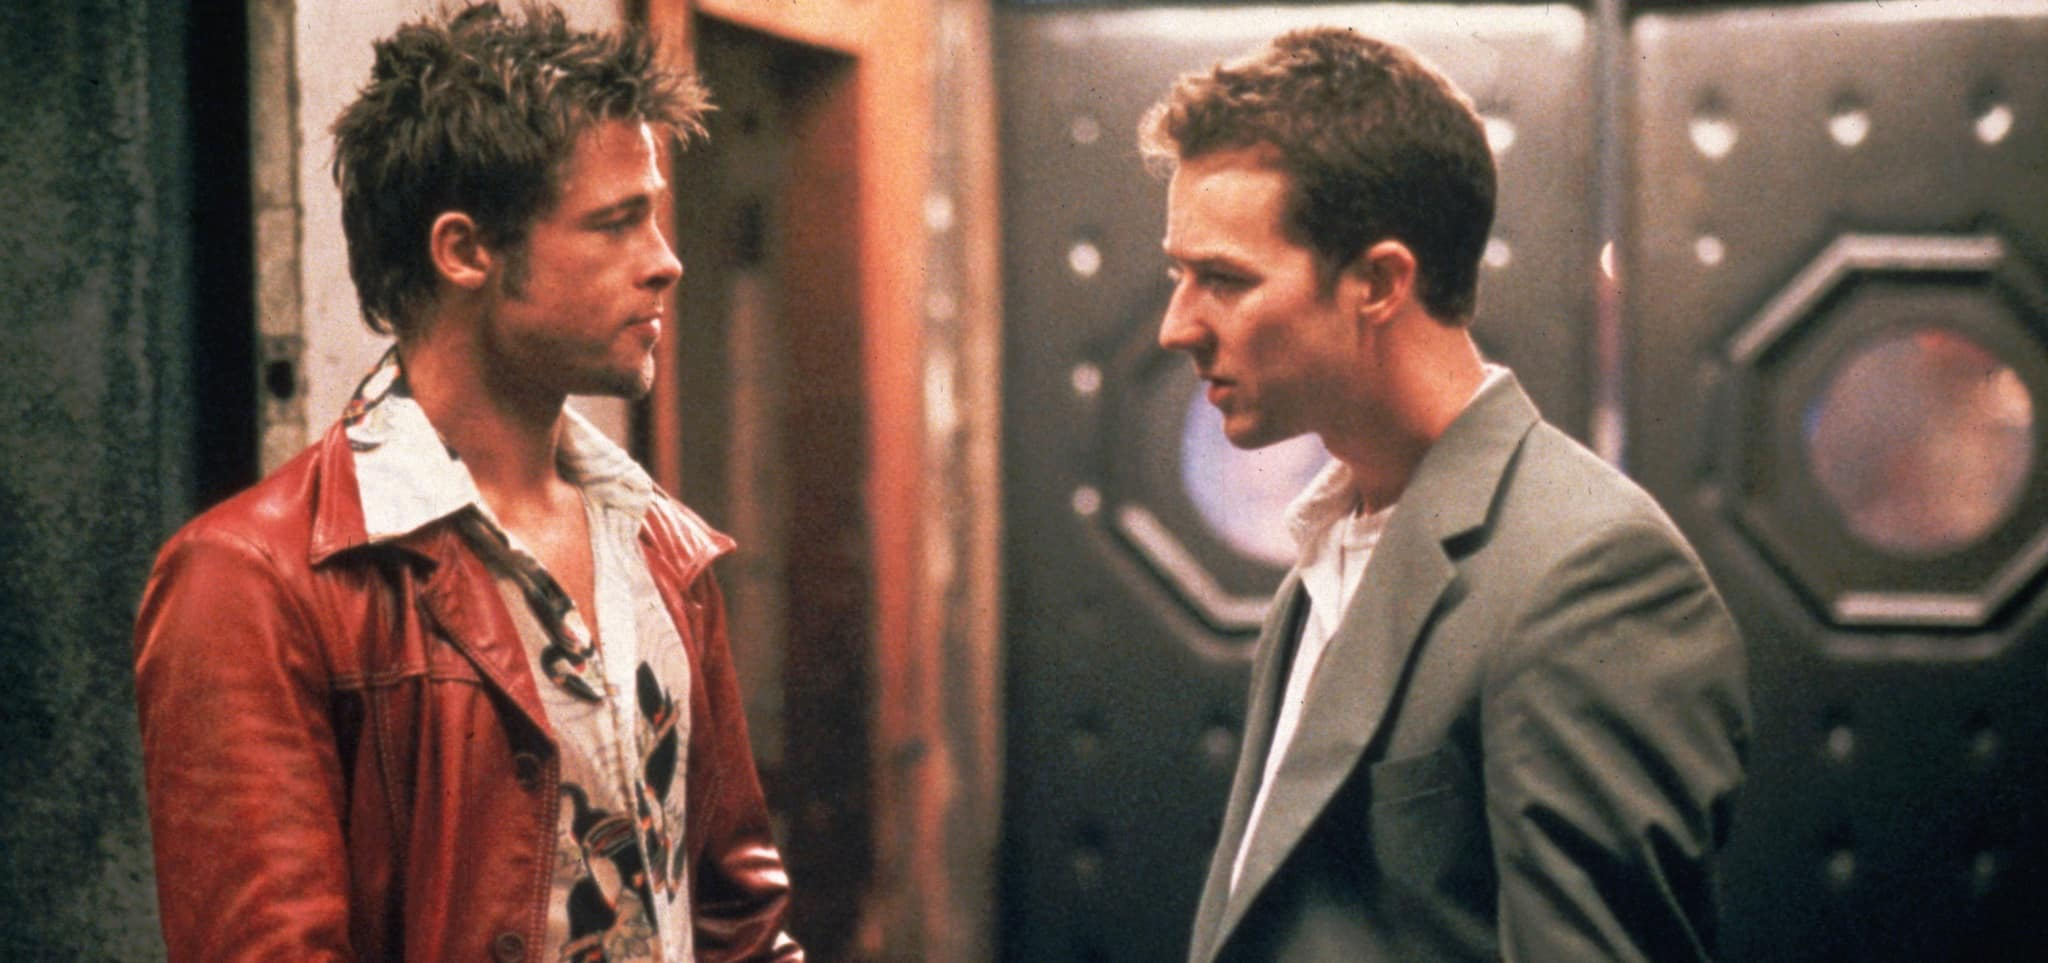 sorpresivos-finales-cine-fight-club-brad-pitt-edward-norton